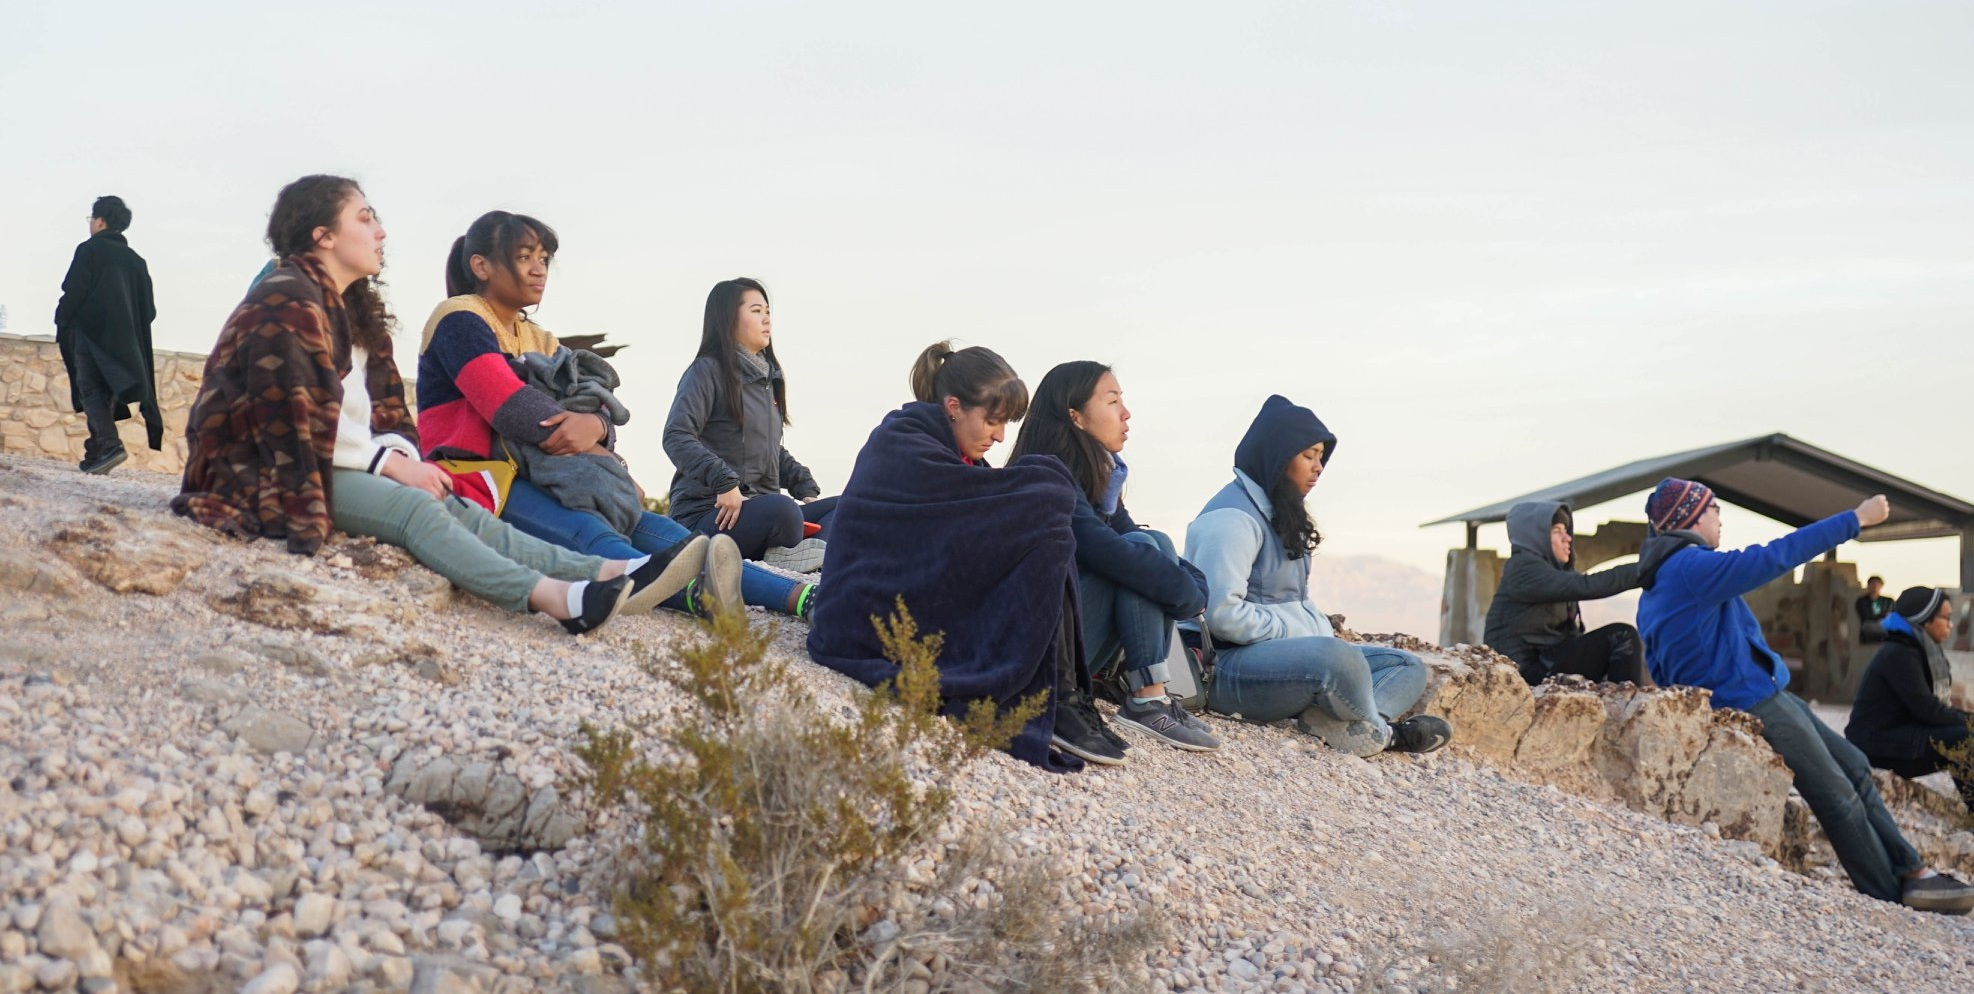 Retreat attendees meditating and watching the sun rise at Exploration Peak